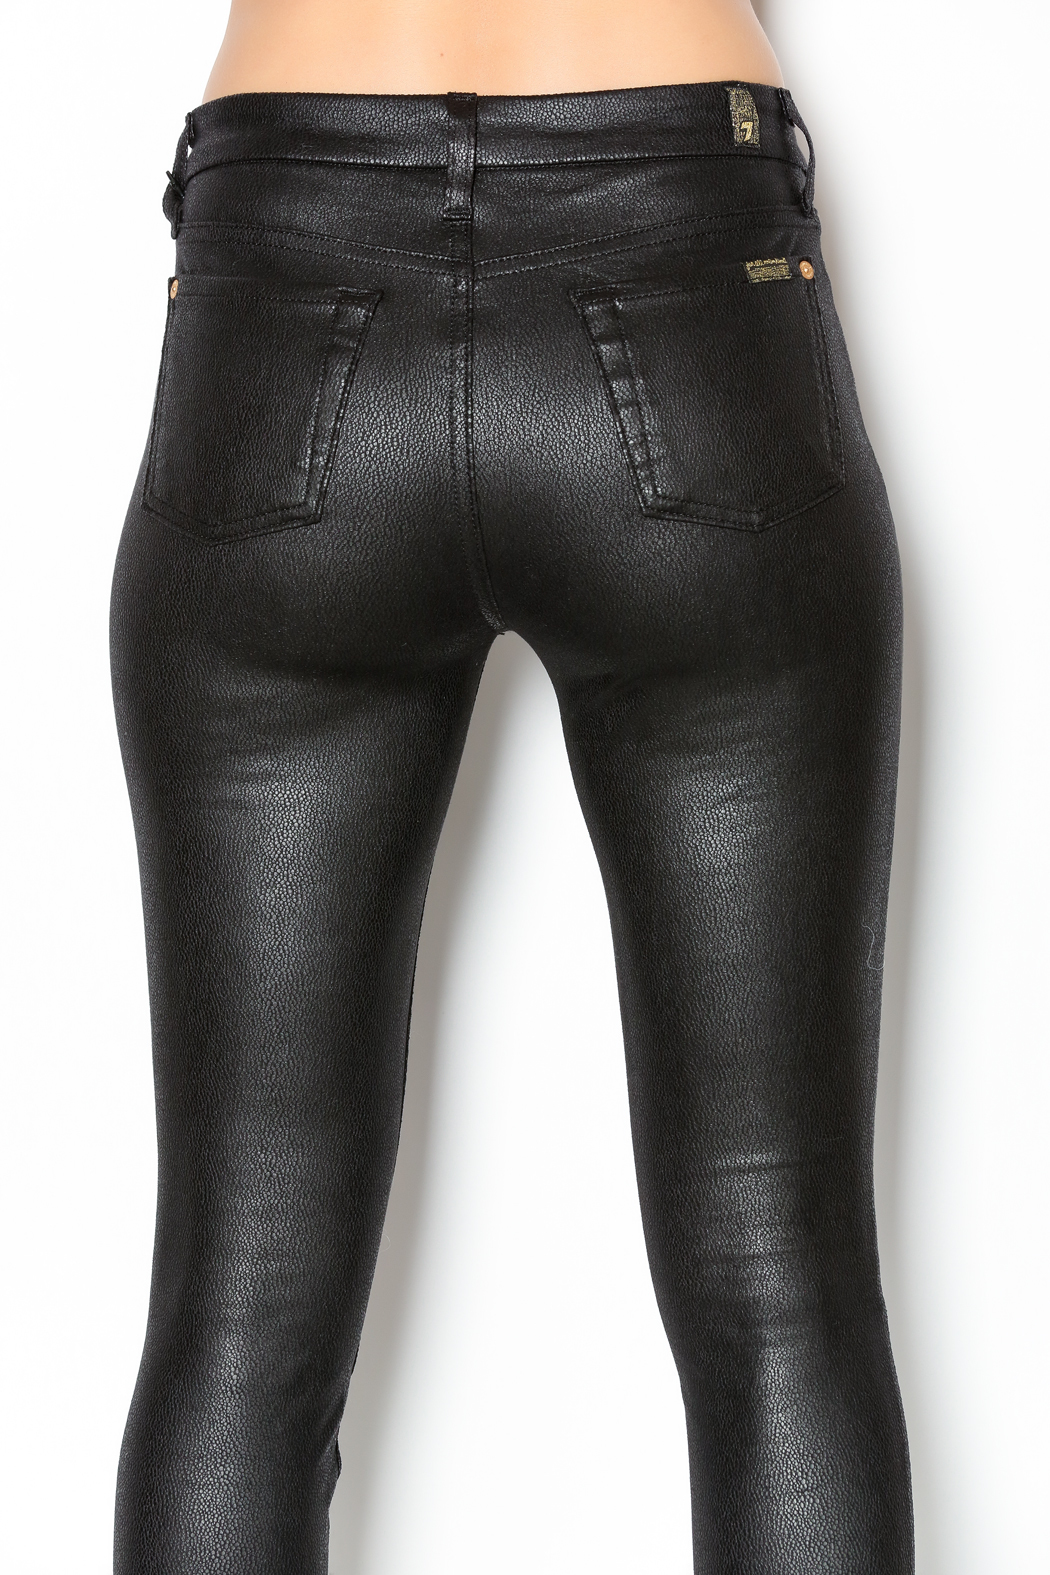 7 For all Mankind Black Crackle Skinny from Florida by Aysia's ...